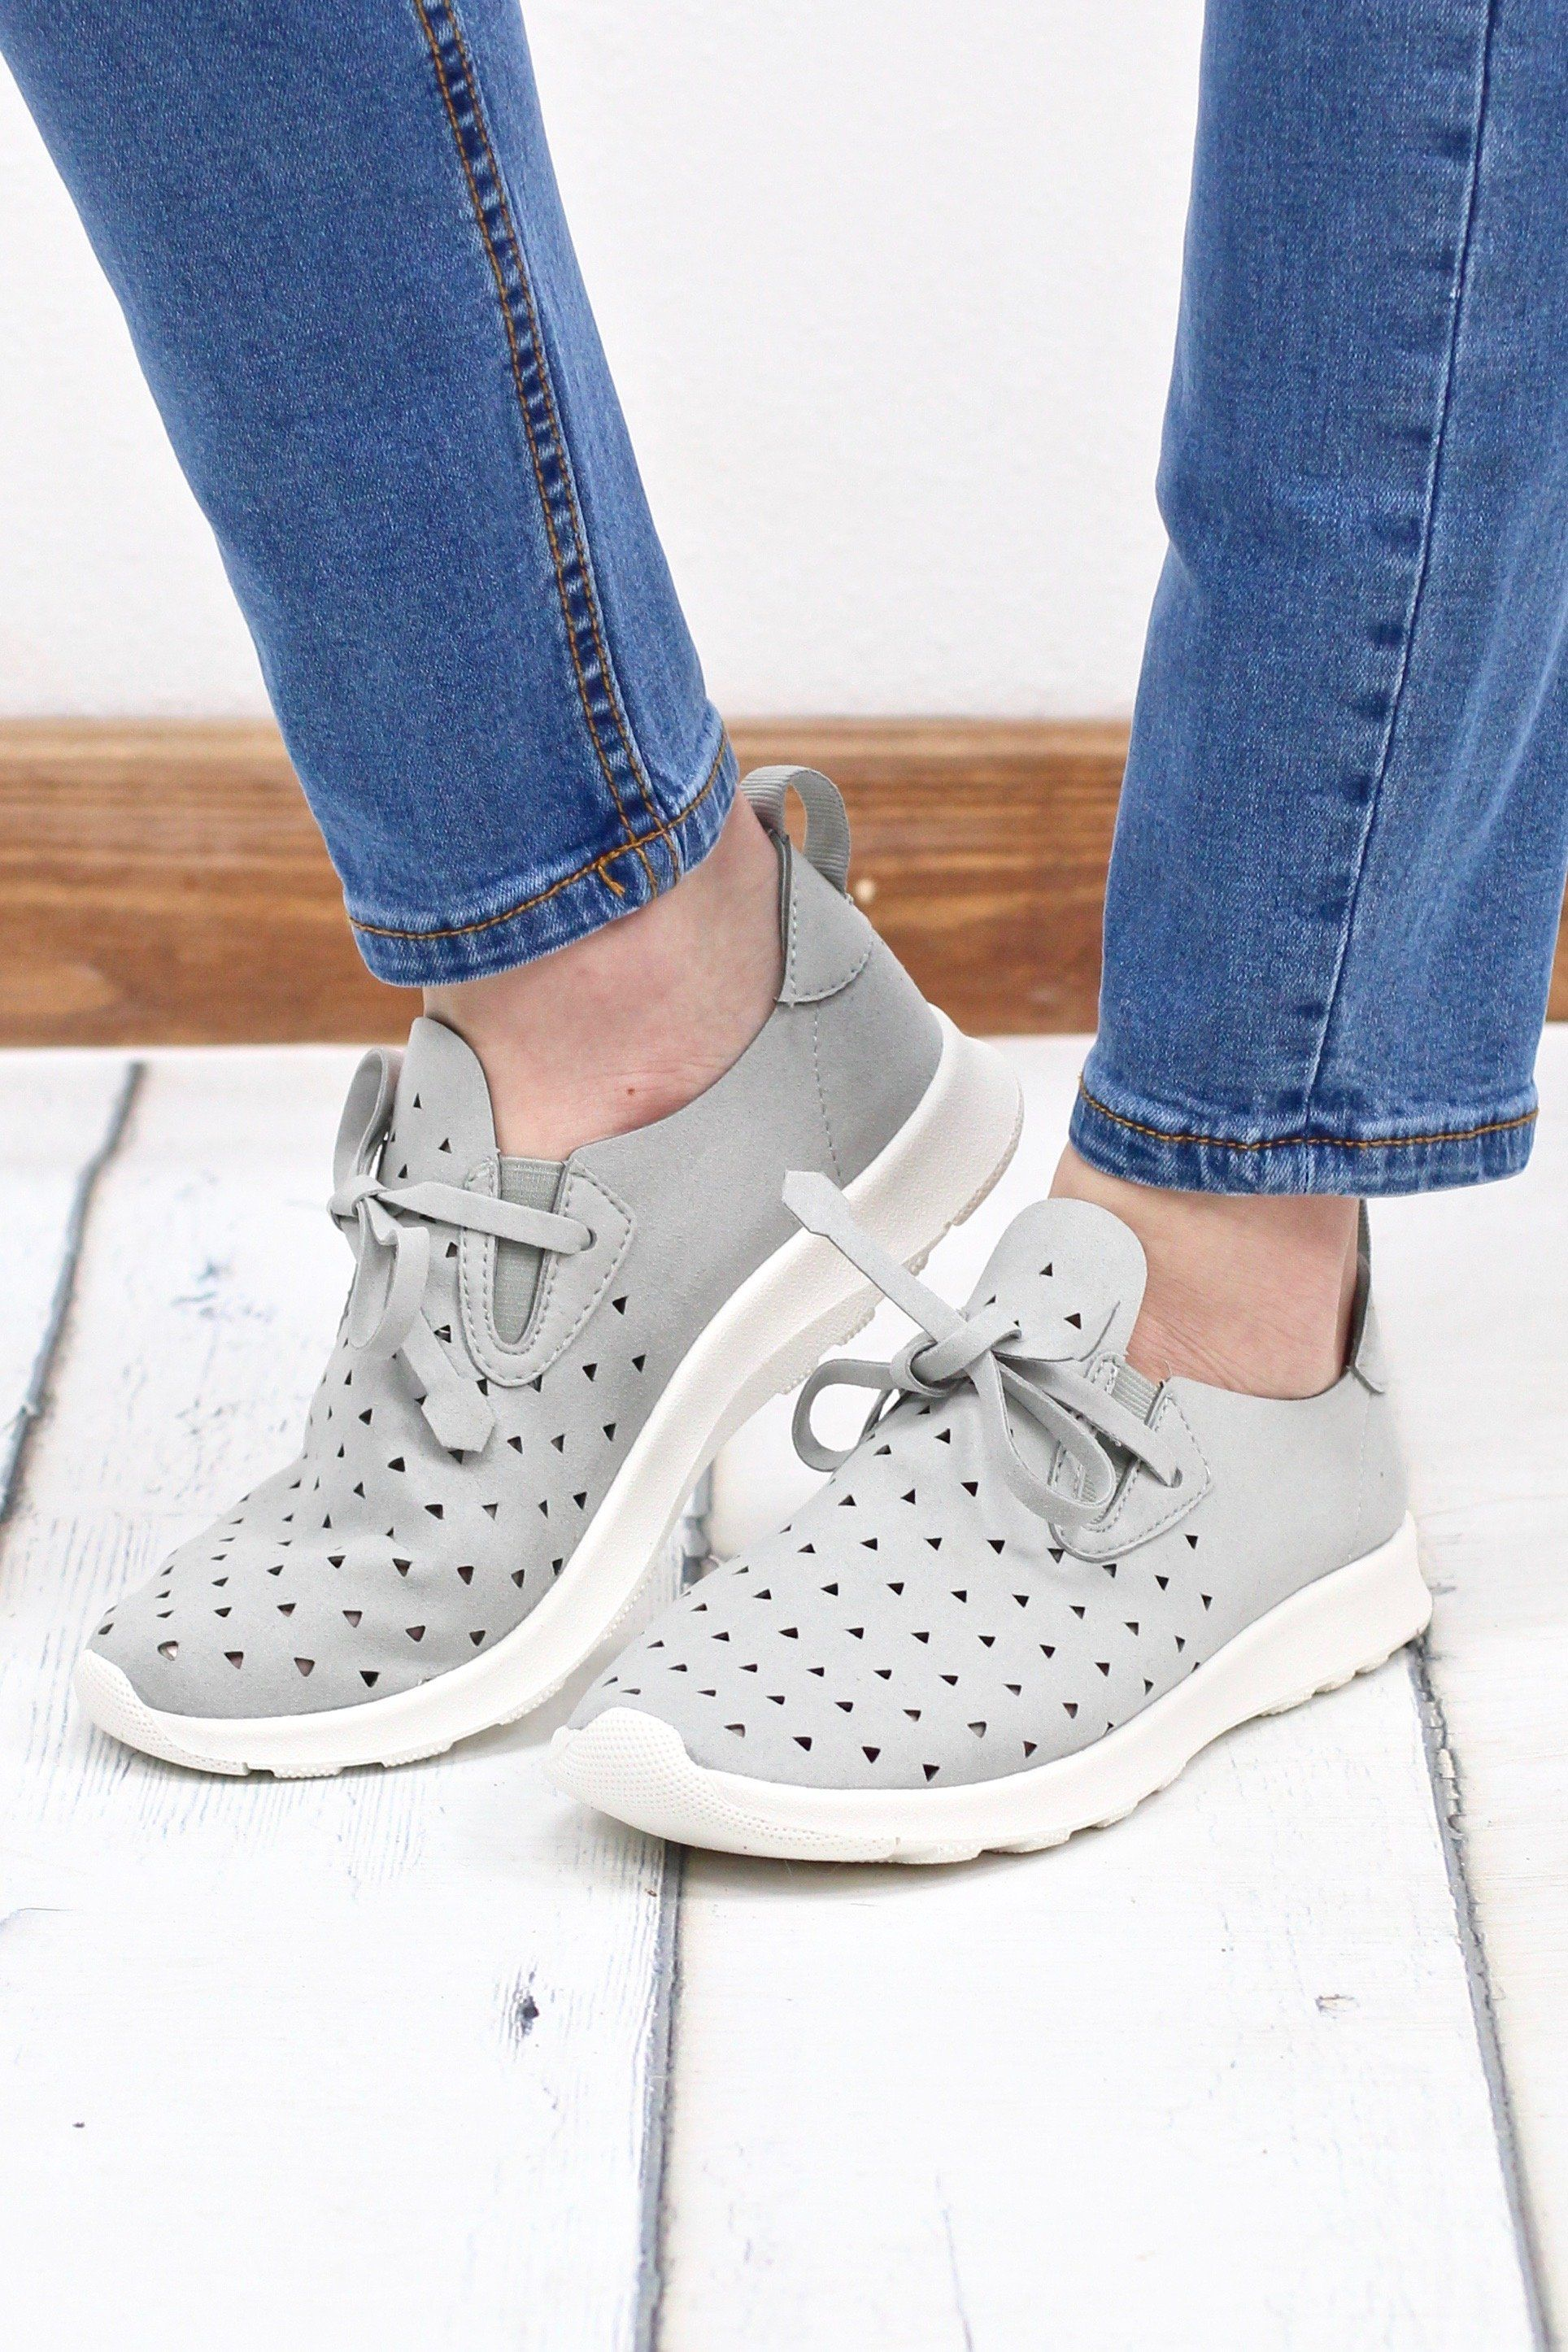 576a5ac6ec The BEST sneakers   tennis shoes ever! Memory foam soles will leave your  feet super comfy all day long! Cute light grey color that goes with  everything.